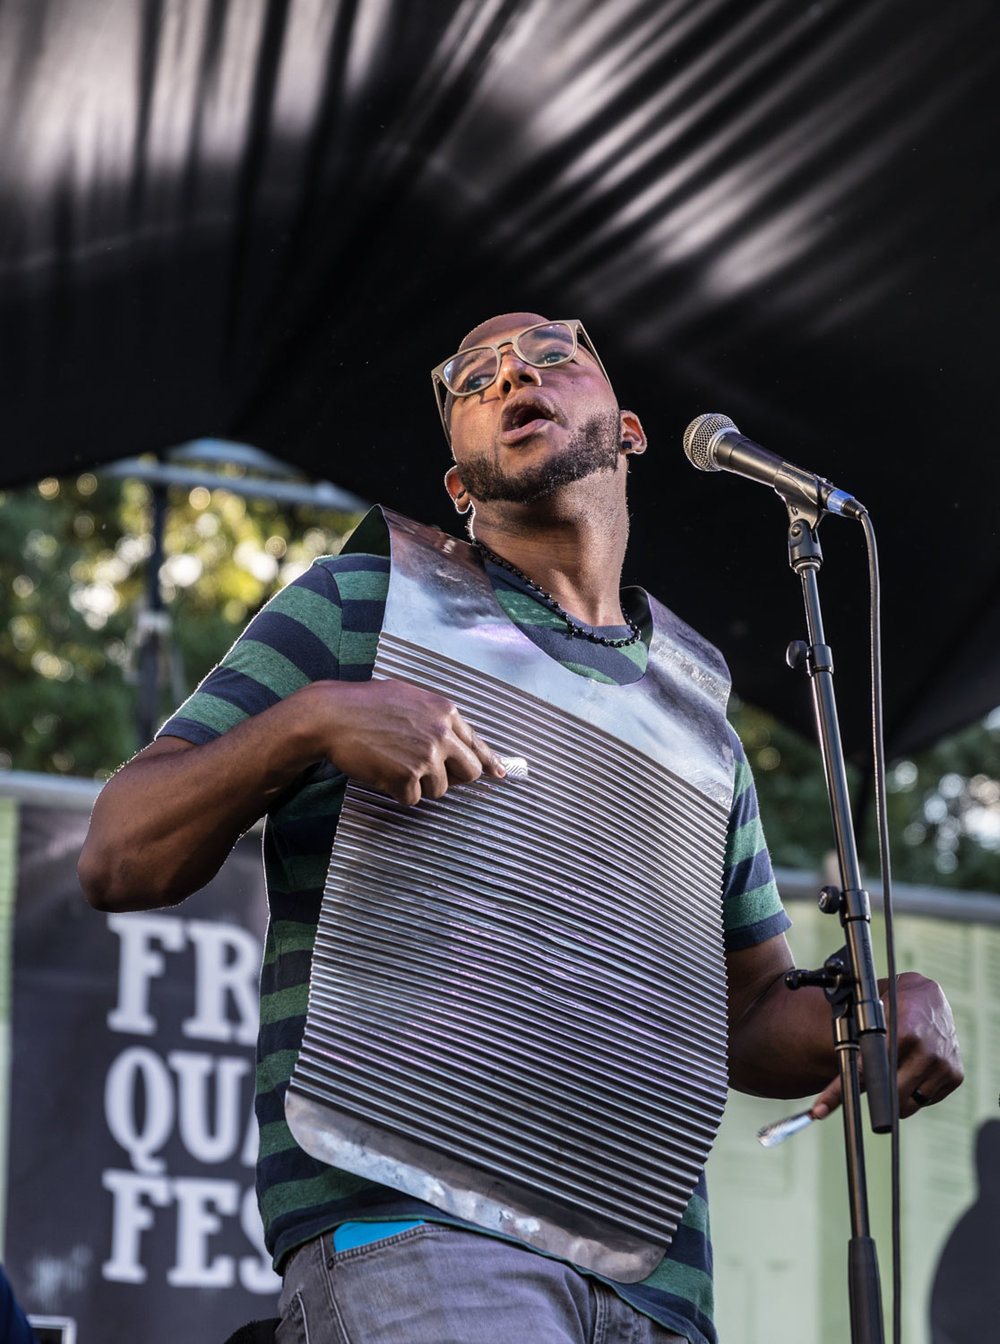 Washboard player Jayme Romain for Corey Ledet's band had some unreal pipes as well as rhythm!